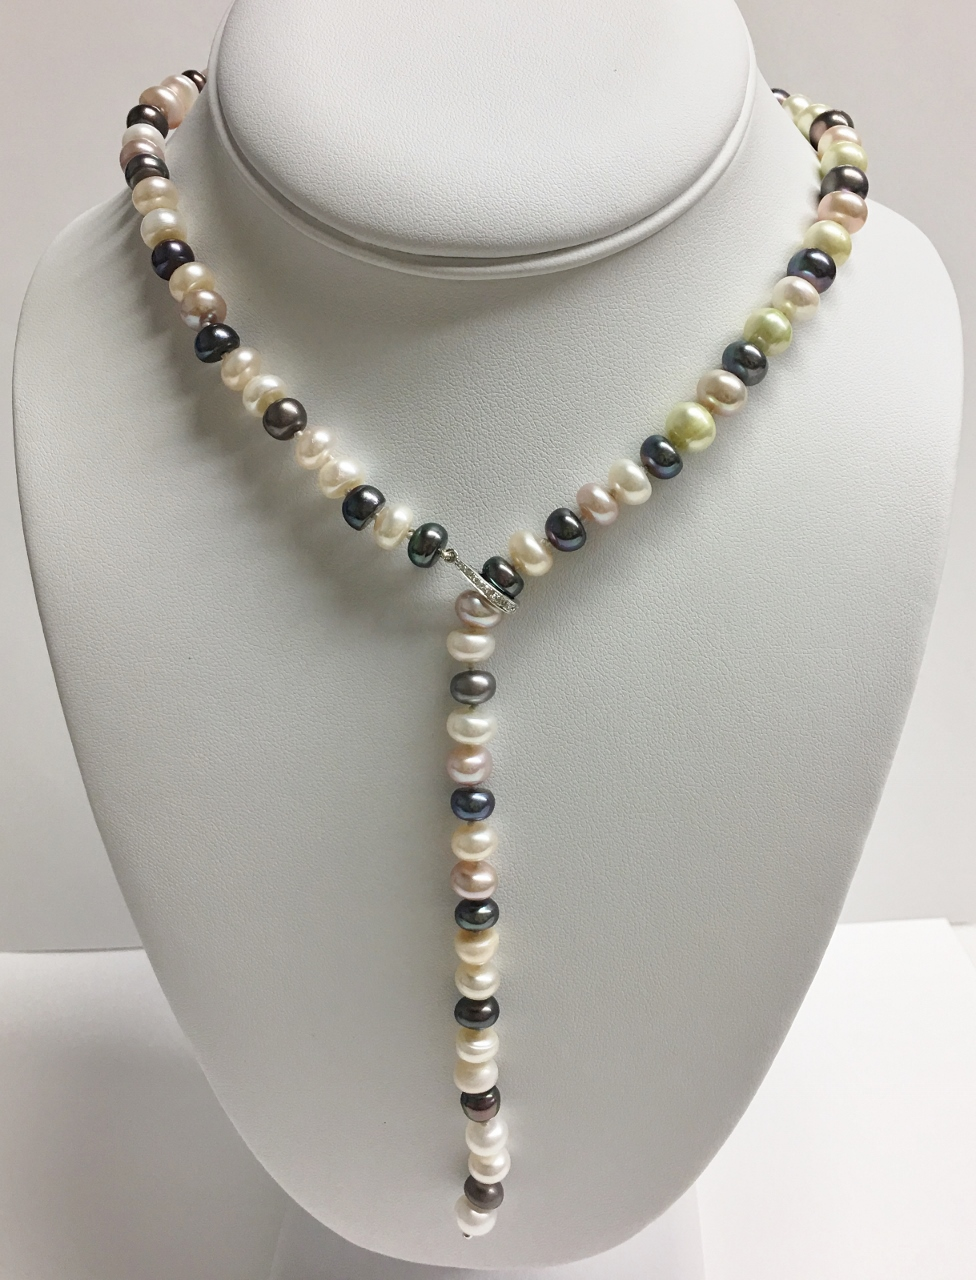 Fresh Water Pearl Necklace With Adjustable Clasp